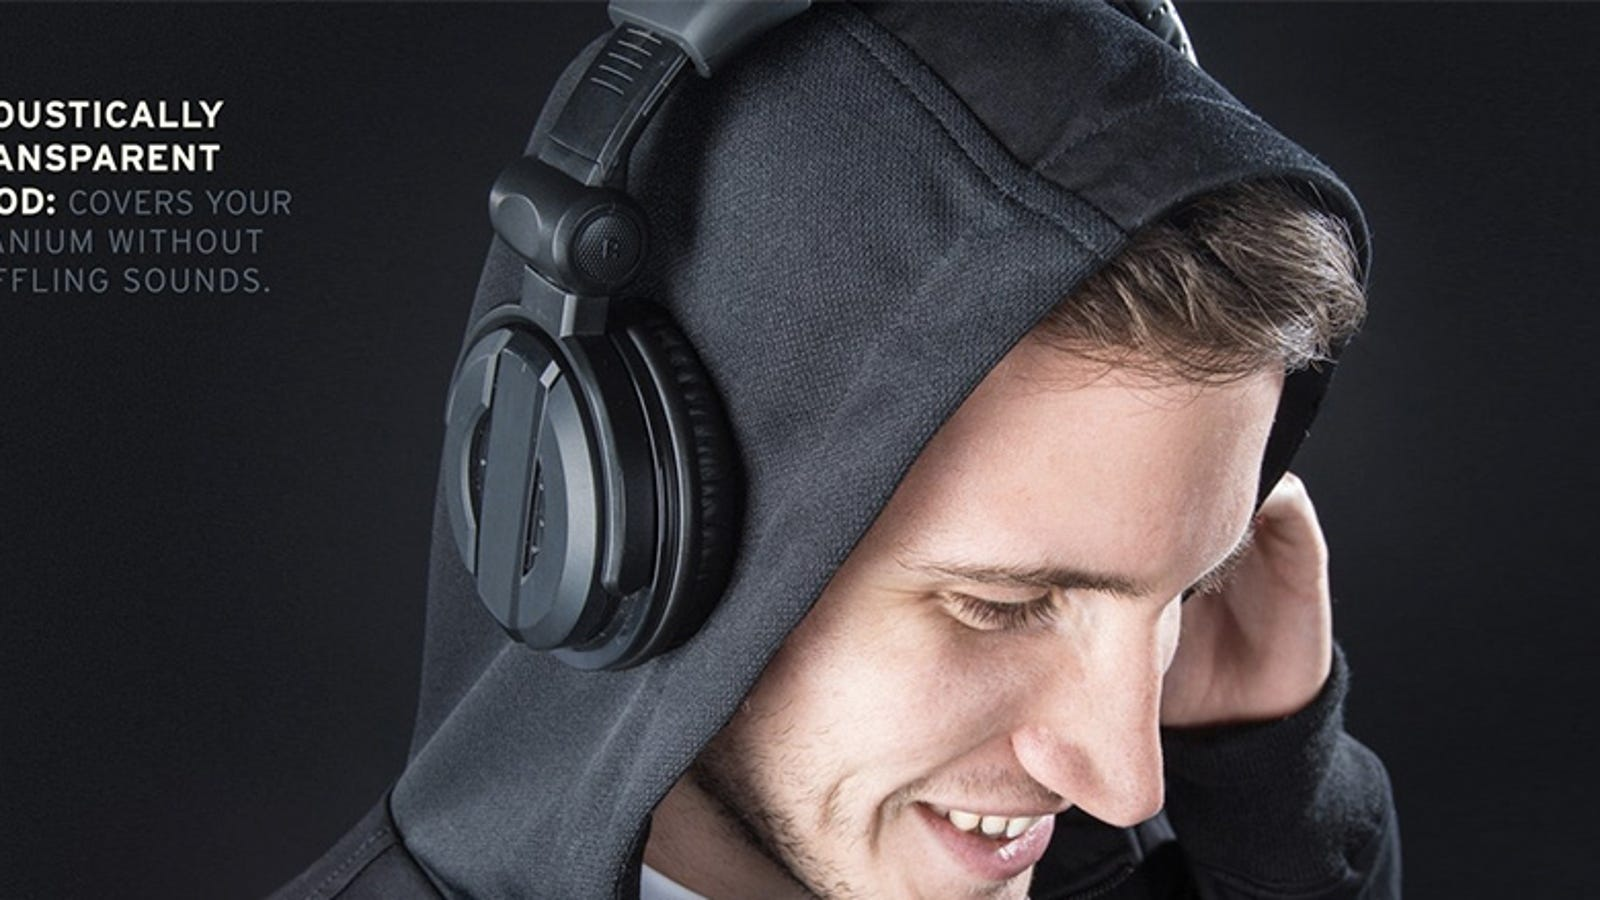 skullcandy earbuds jib white - A Hoodie Made From Speaker Fabric Won't Muffle Your Headphones